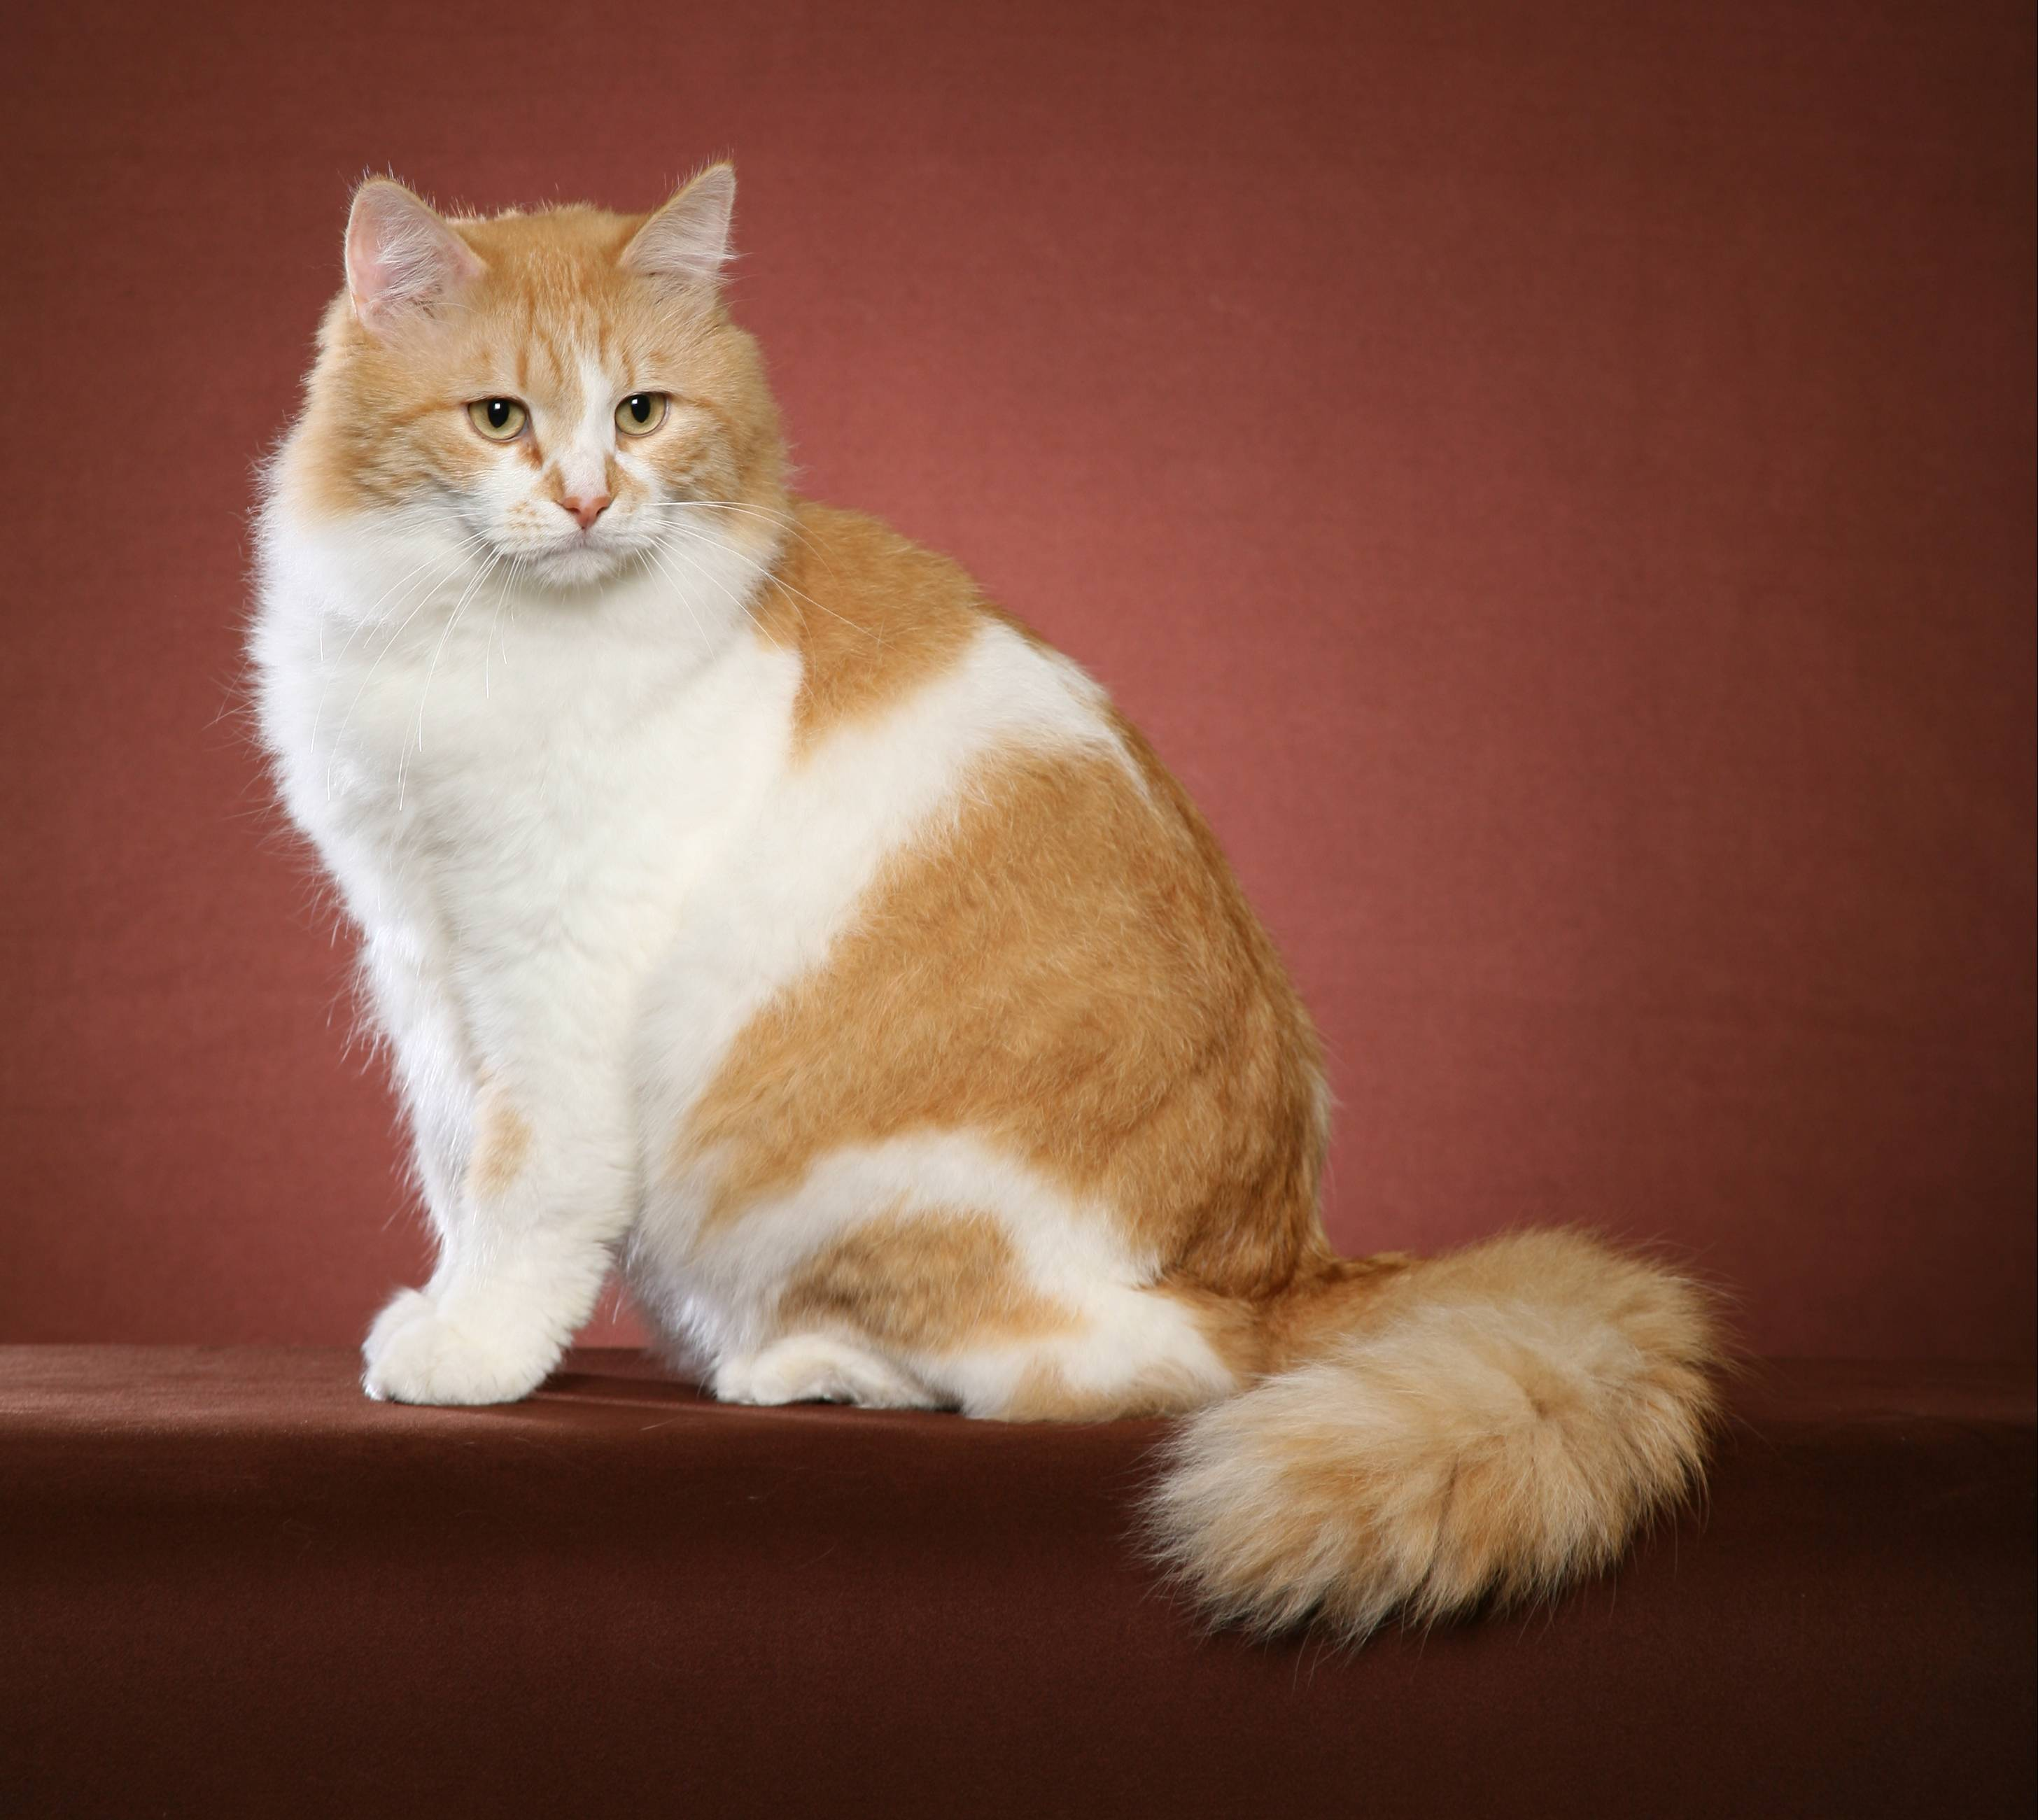 Sibirskiy Siberian Cats - TICA Siberian Standard in Pictures